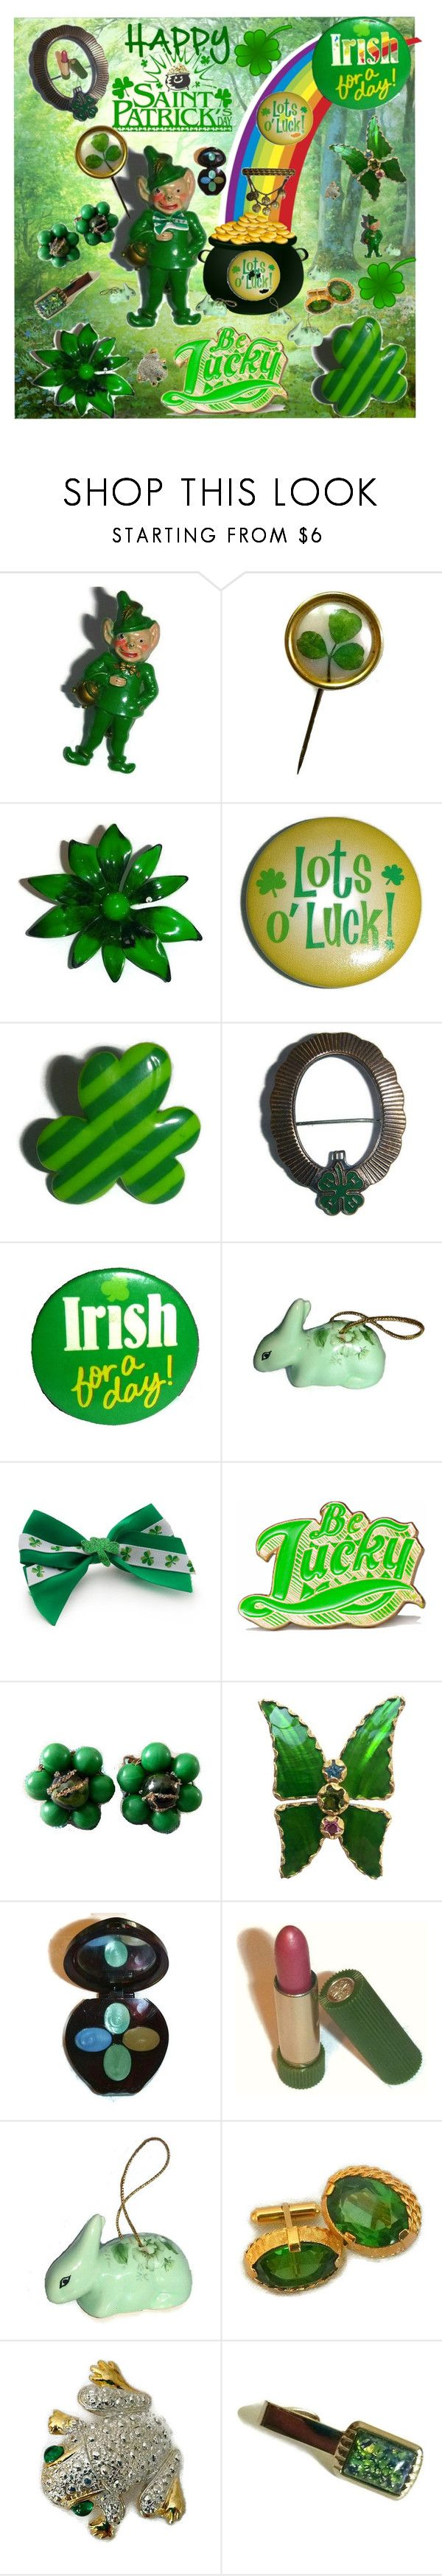 Happy St. Patrick's Day ~ Vintage Style! by popcornvintagebytann on Polyvore featuring Marby & Elm, Yves Saint Laurent, Napier, Red Camel, Avon, DEPT and vintage